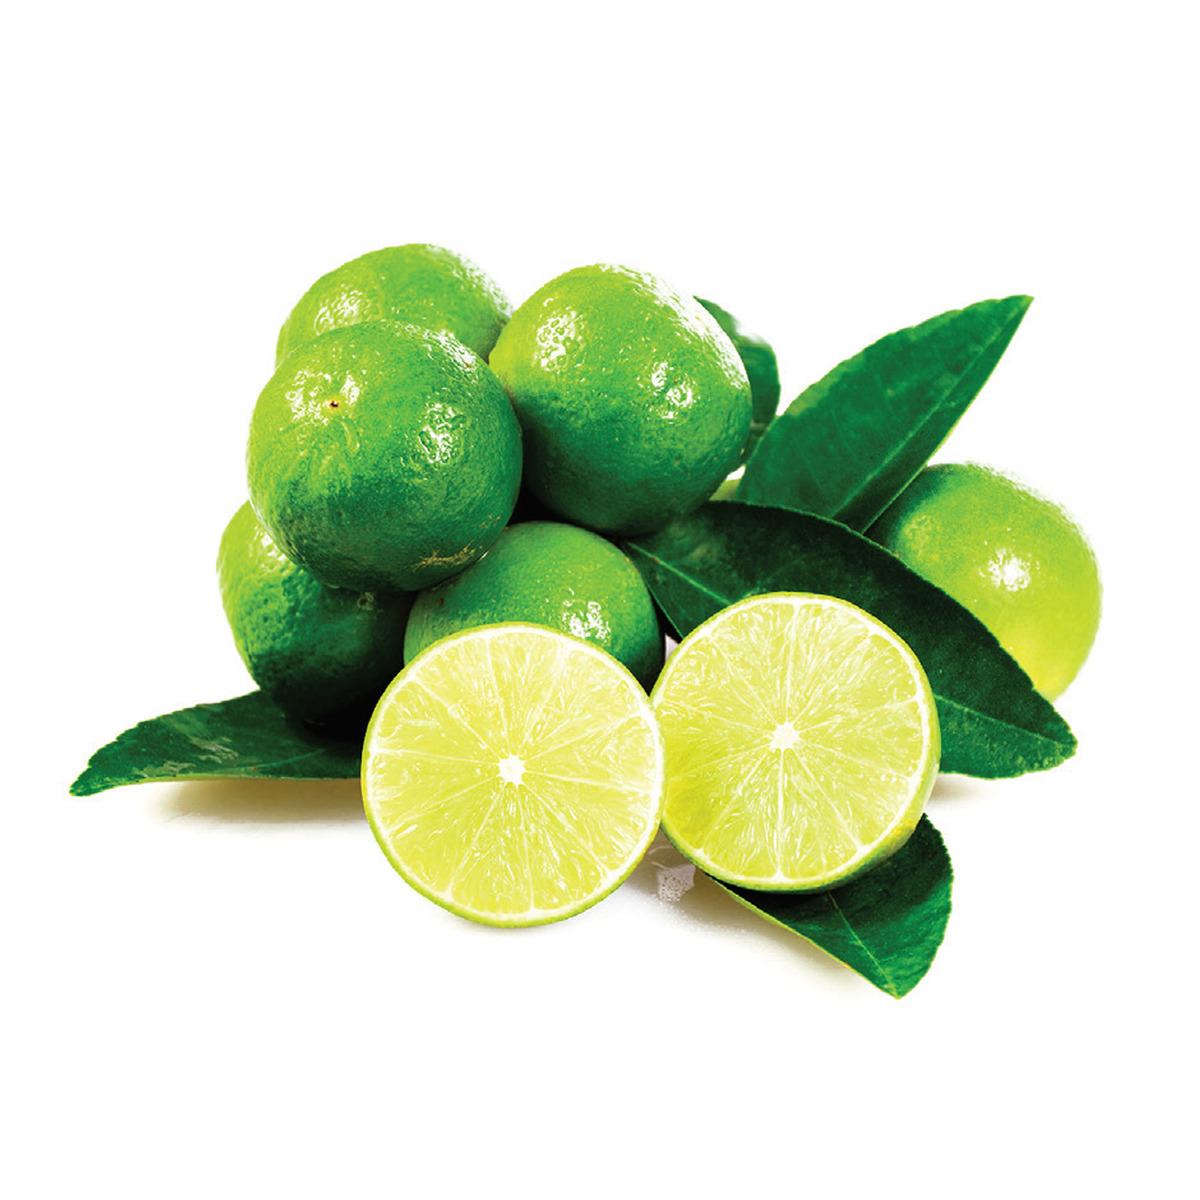 Lime Seedless Vietnam 500g Approx. Weight